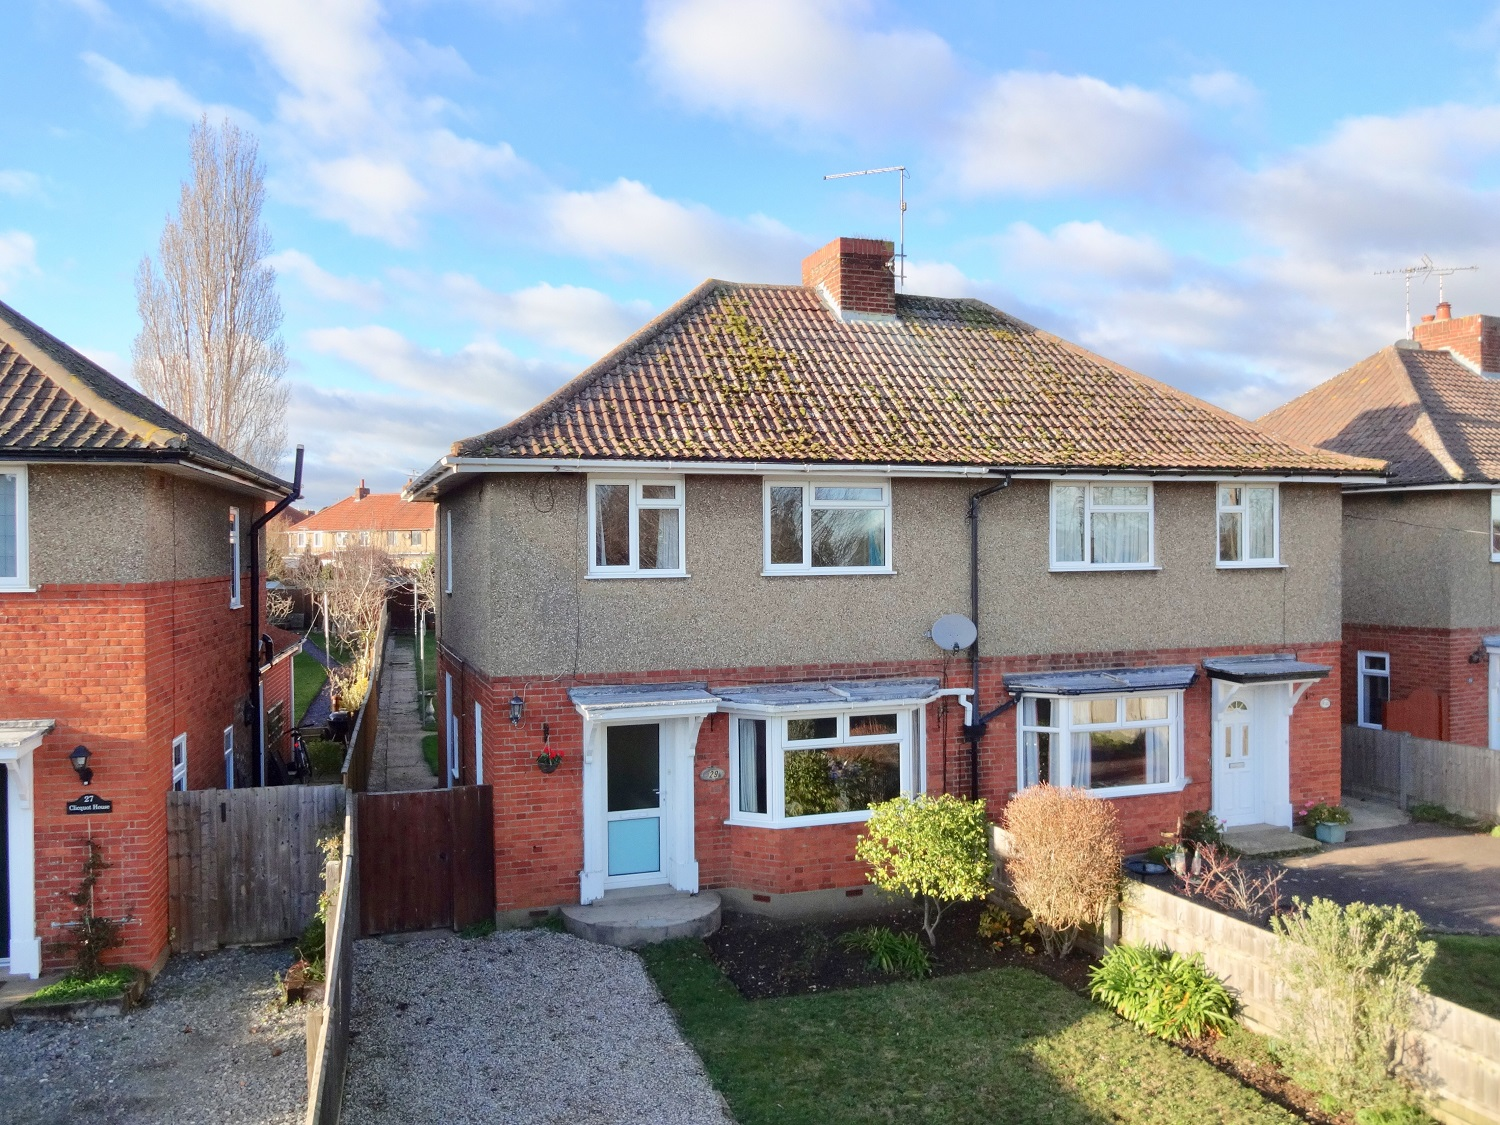 3 bedroom semi-detached house with a large garden